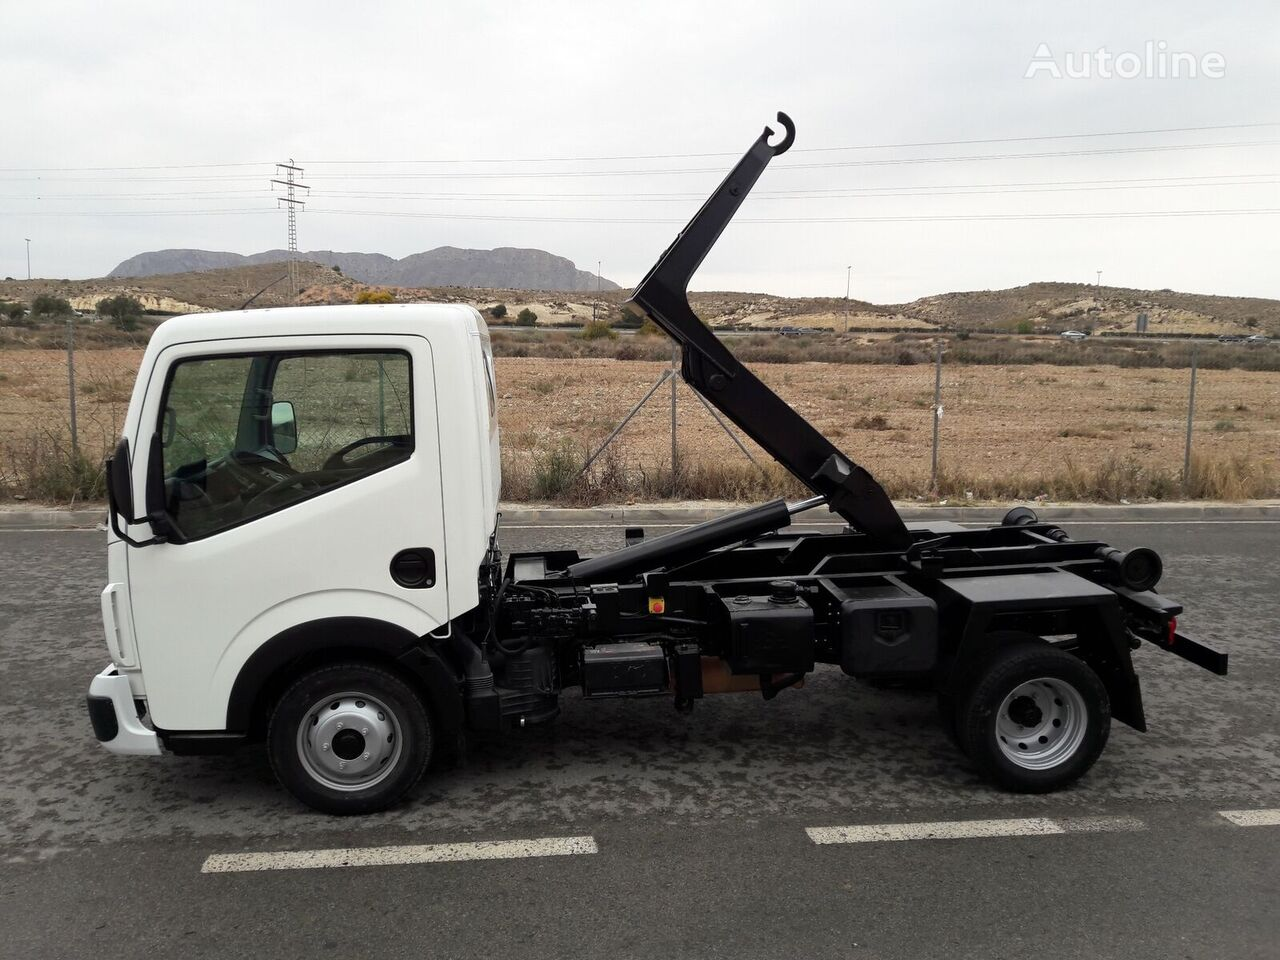 RENAULT MAXITY EQUIPO MULTILIFT kamion rol kiper